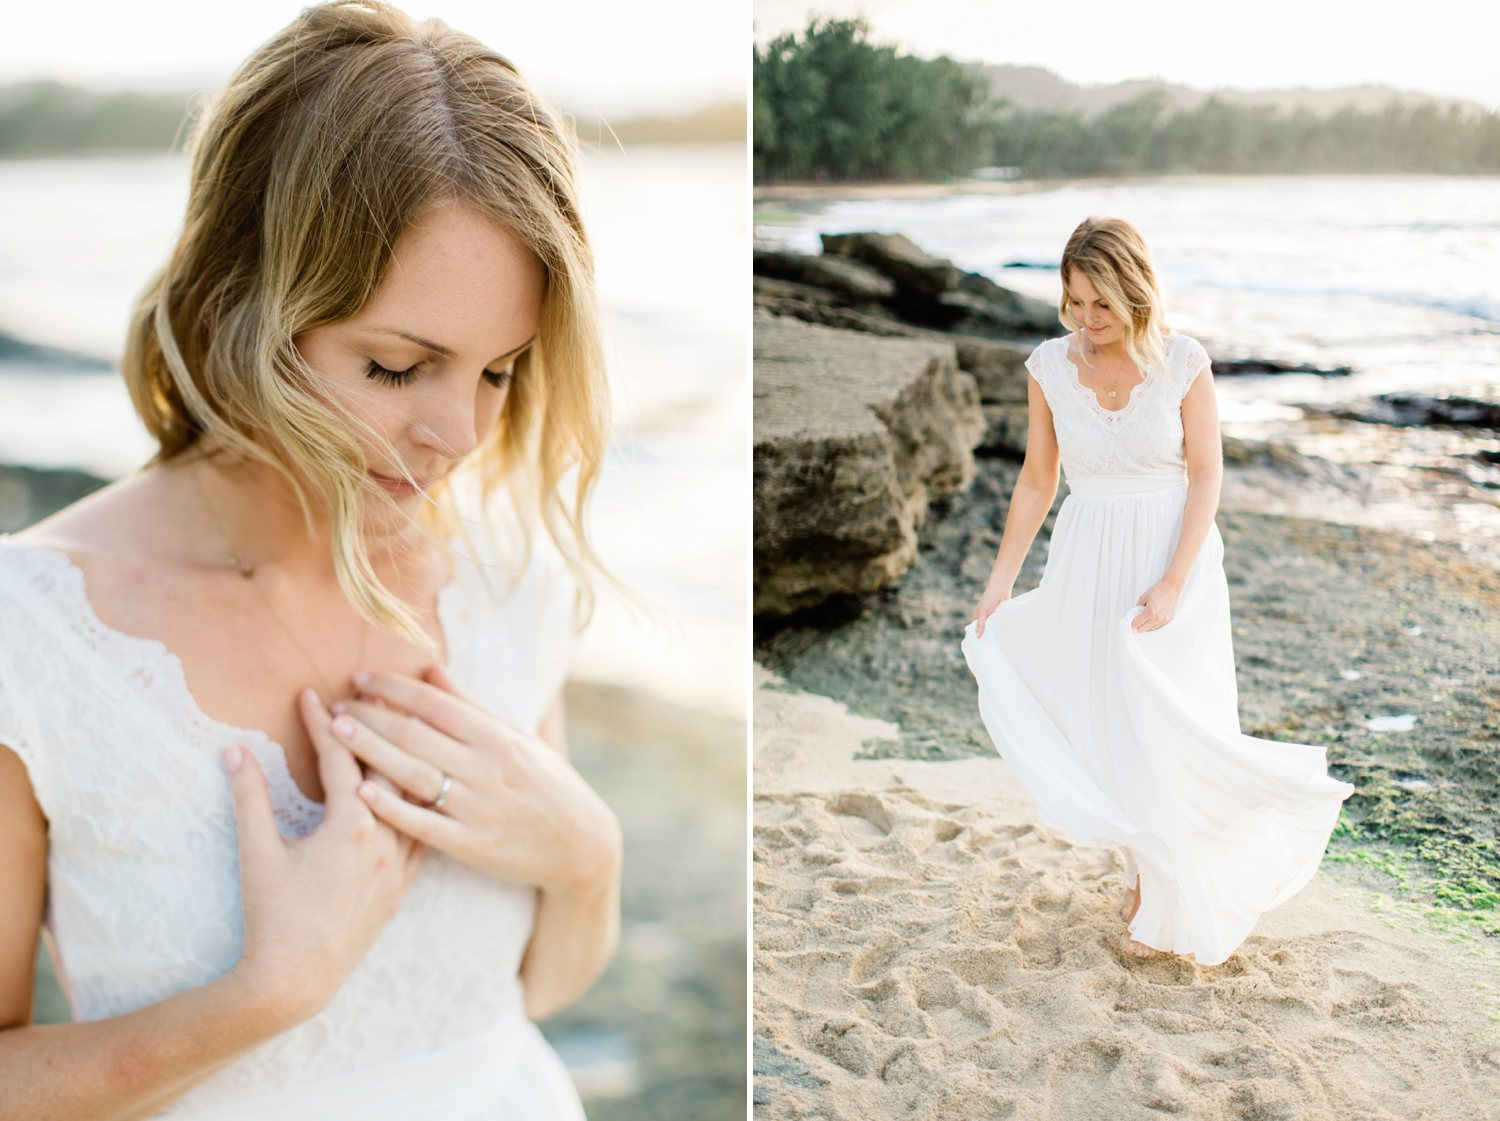 annika-pele-hawaii-elopement-023.jpg